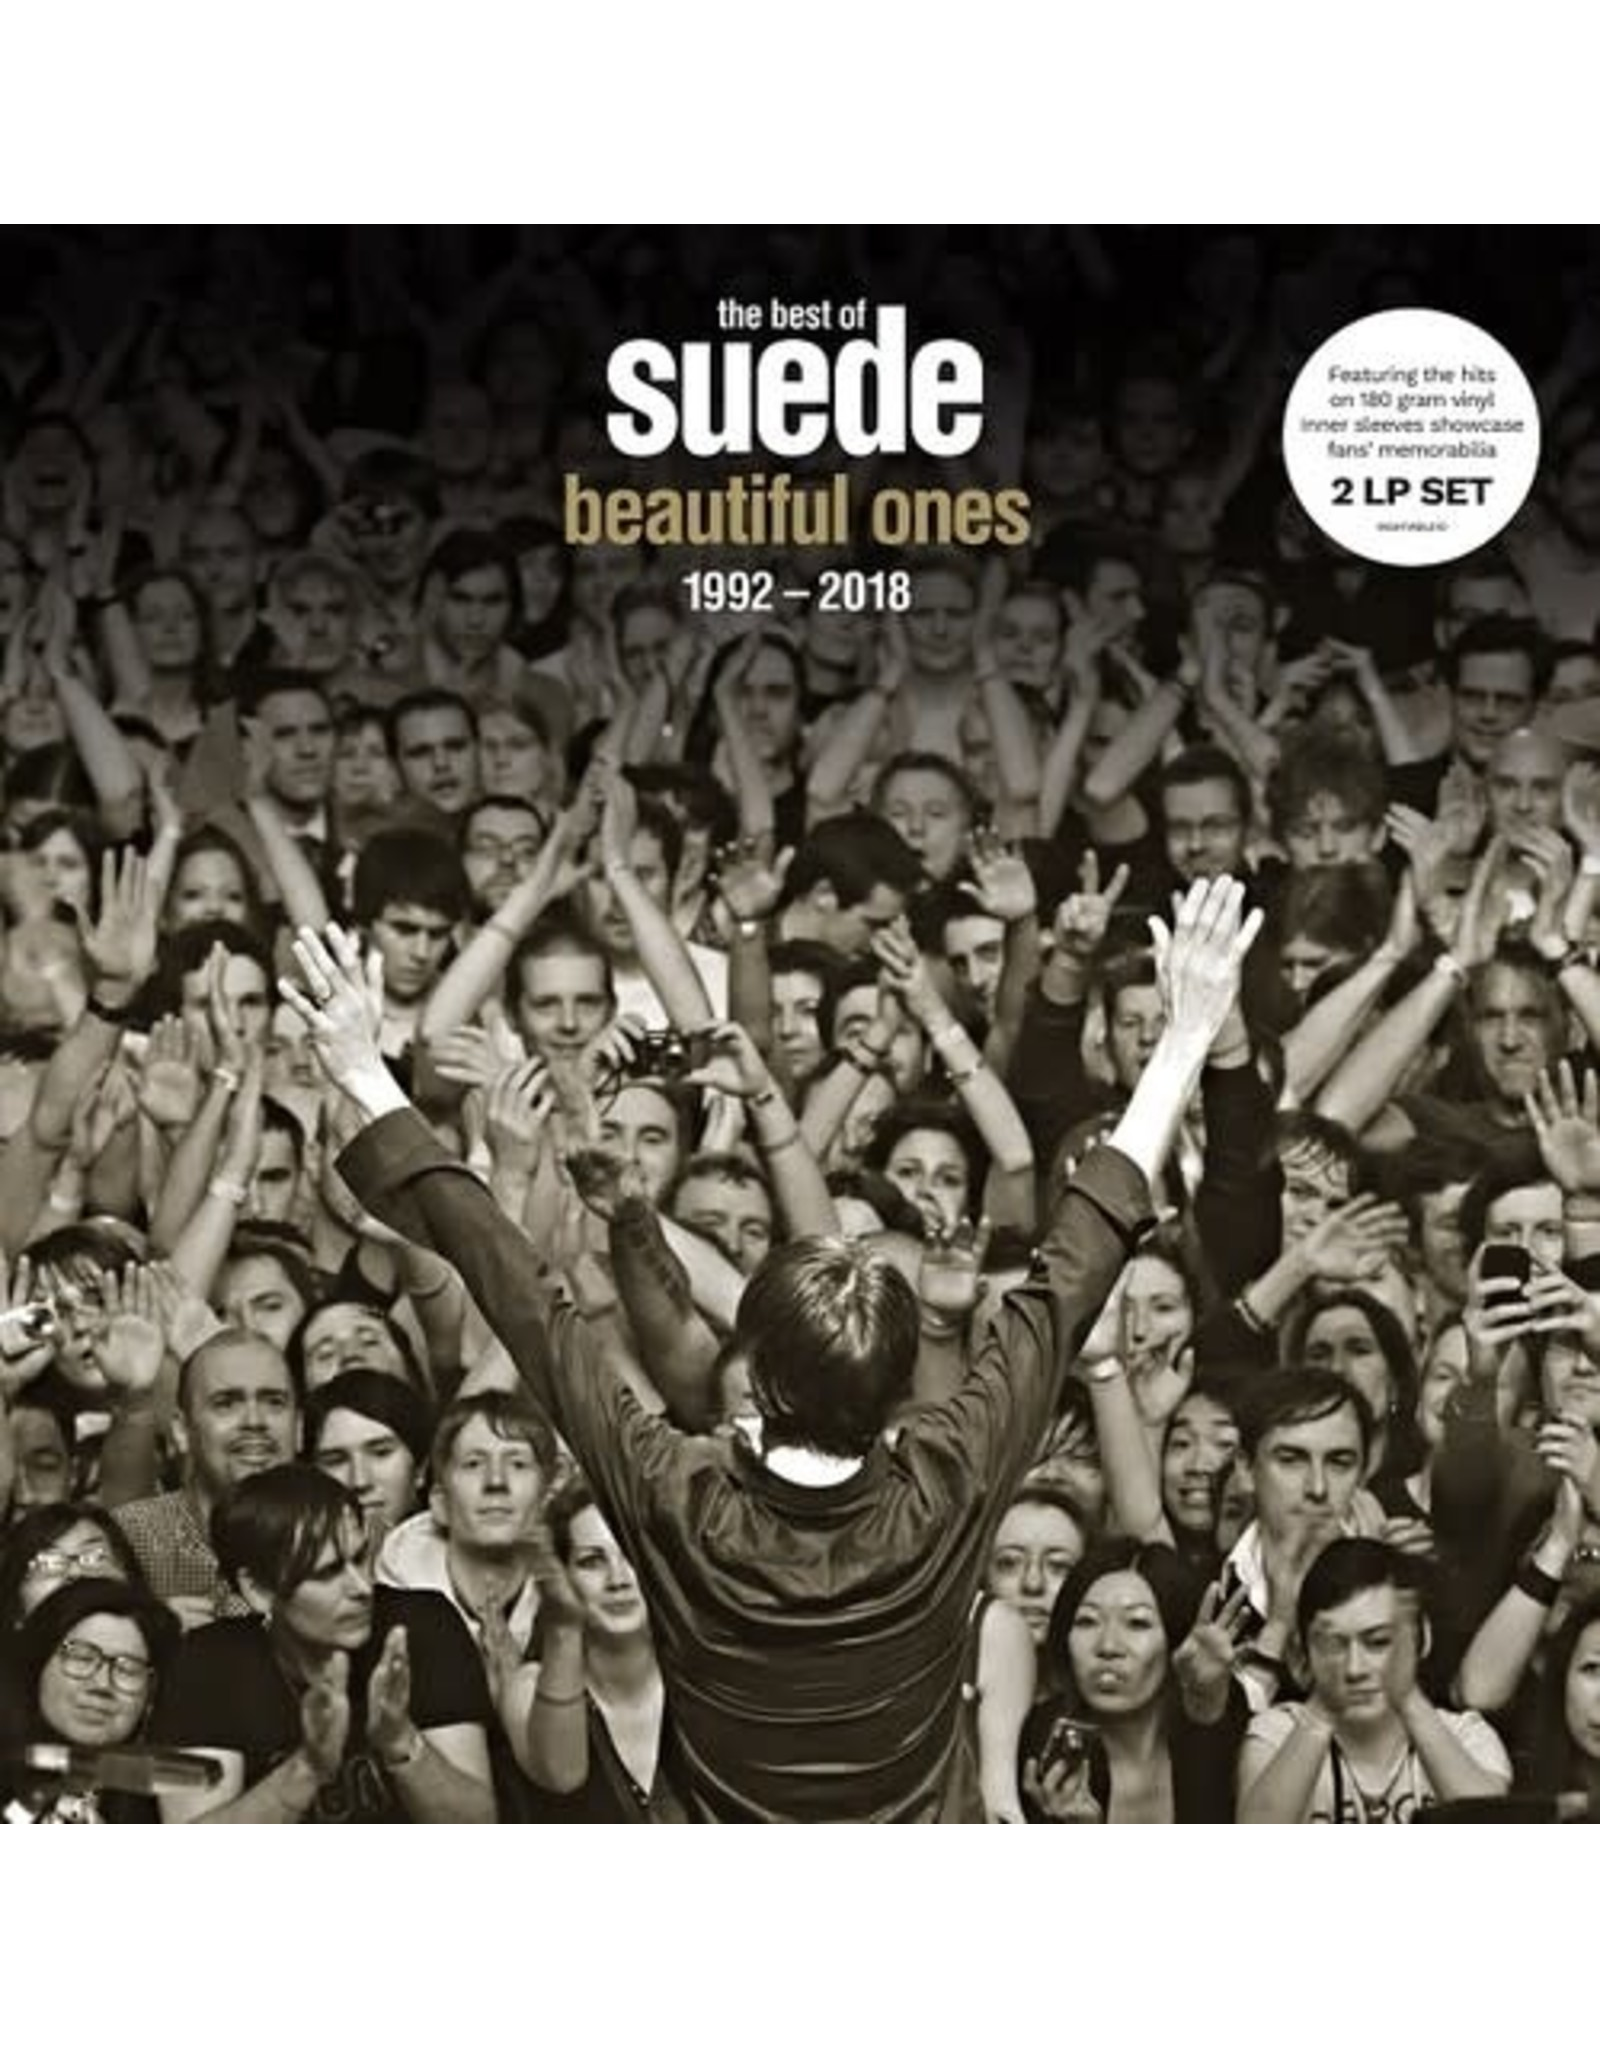 New Vinyl Suede - Beautiful Ones: The Best Of Suede 1992-2018 2LP